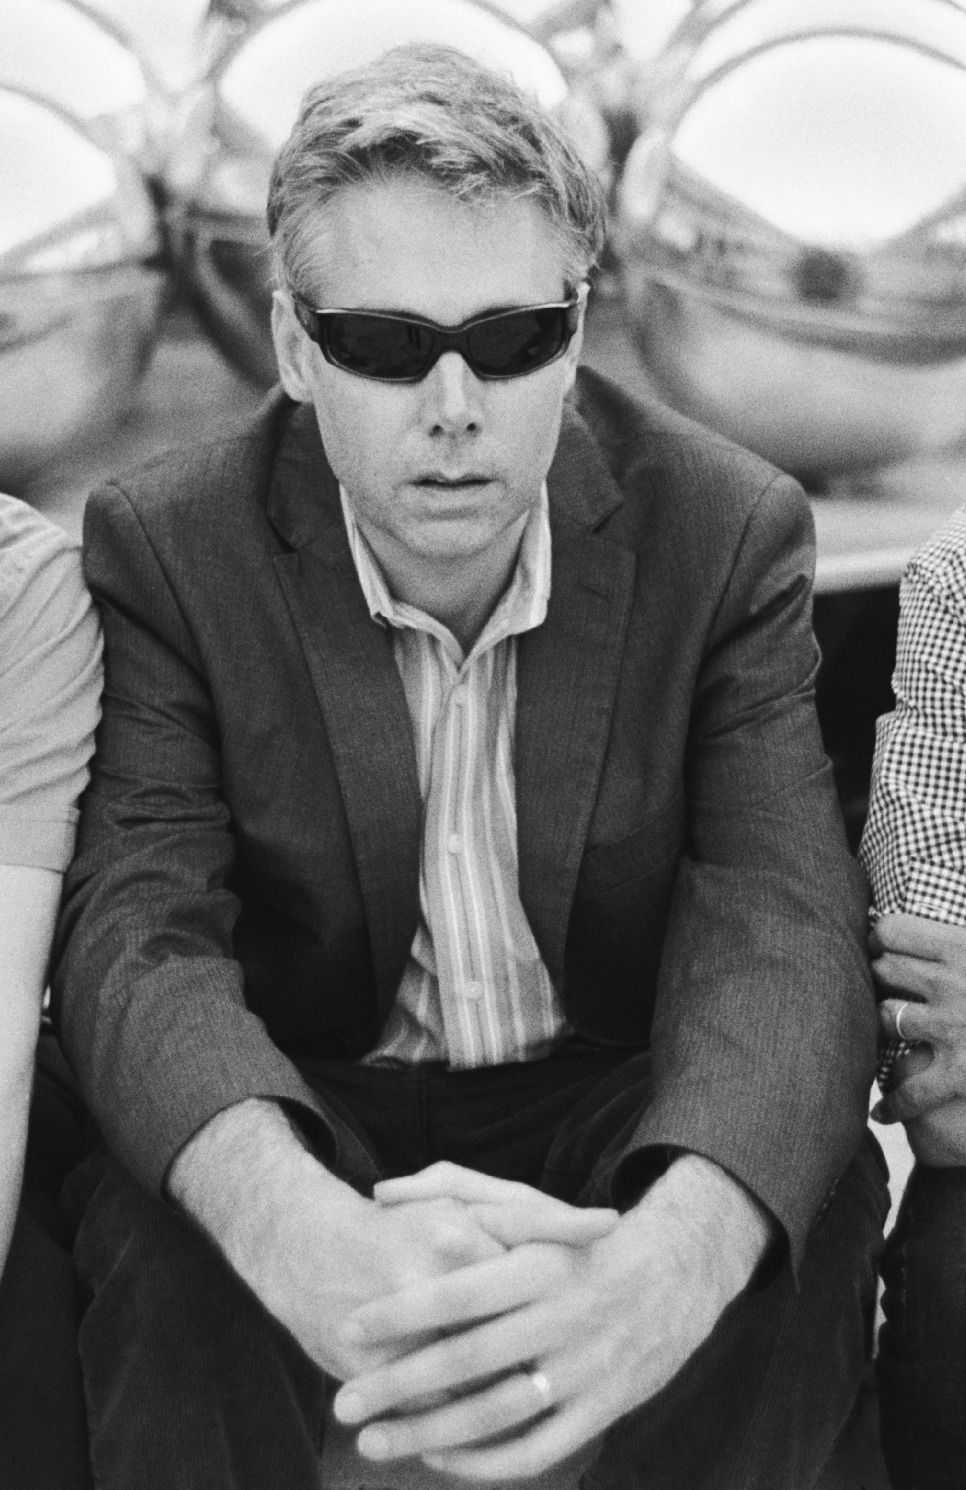 adam yauch find a graveadam yauch park, adam yauch, adam yauch cancer, adam yauch wife, adam yauch funeral, adam yauch dead, adam yauch wiki, adam yauch mca, adam yauch bass, adam yauch 2012, adam yauch find a grave, adam yauch wife dechen wangdu, adam yauch net worth, adam yauch daughter, adam yauch quotes, adam yauch cause of death, adam yauch de que murio, adam yauch tribute, adam yauch last days, adam yauch park brooklyn